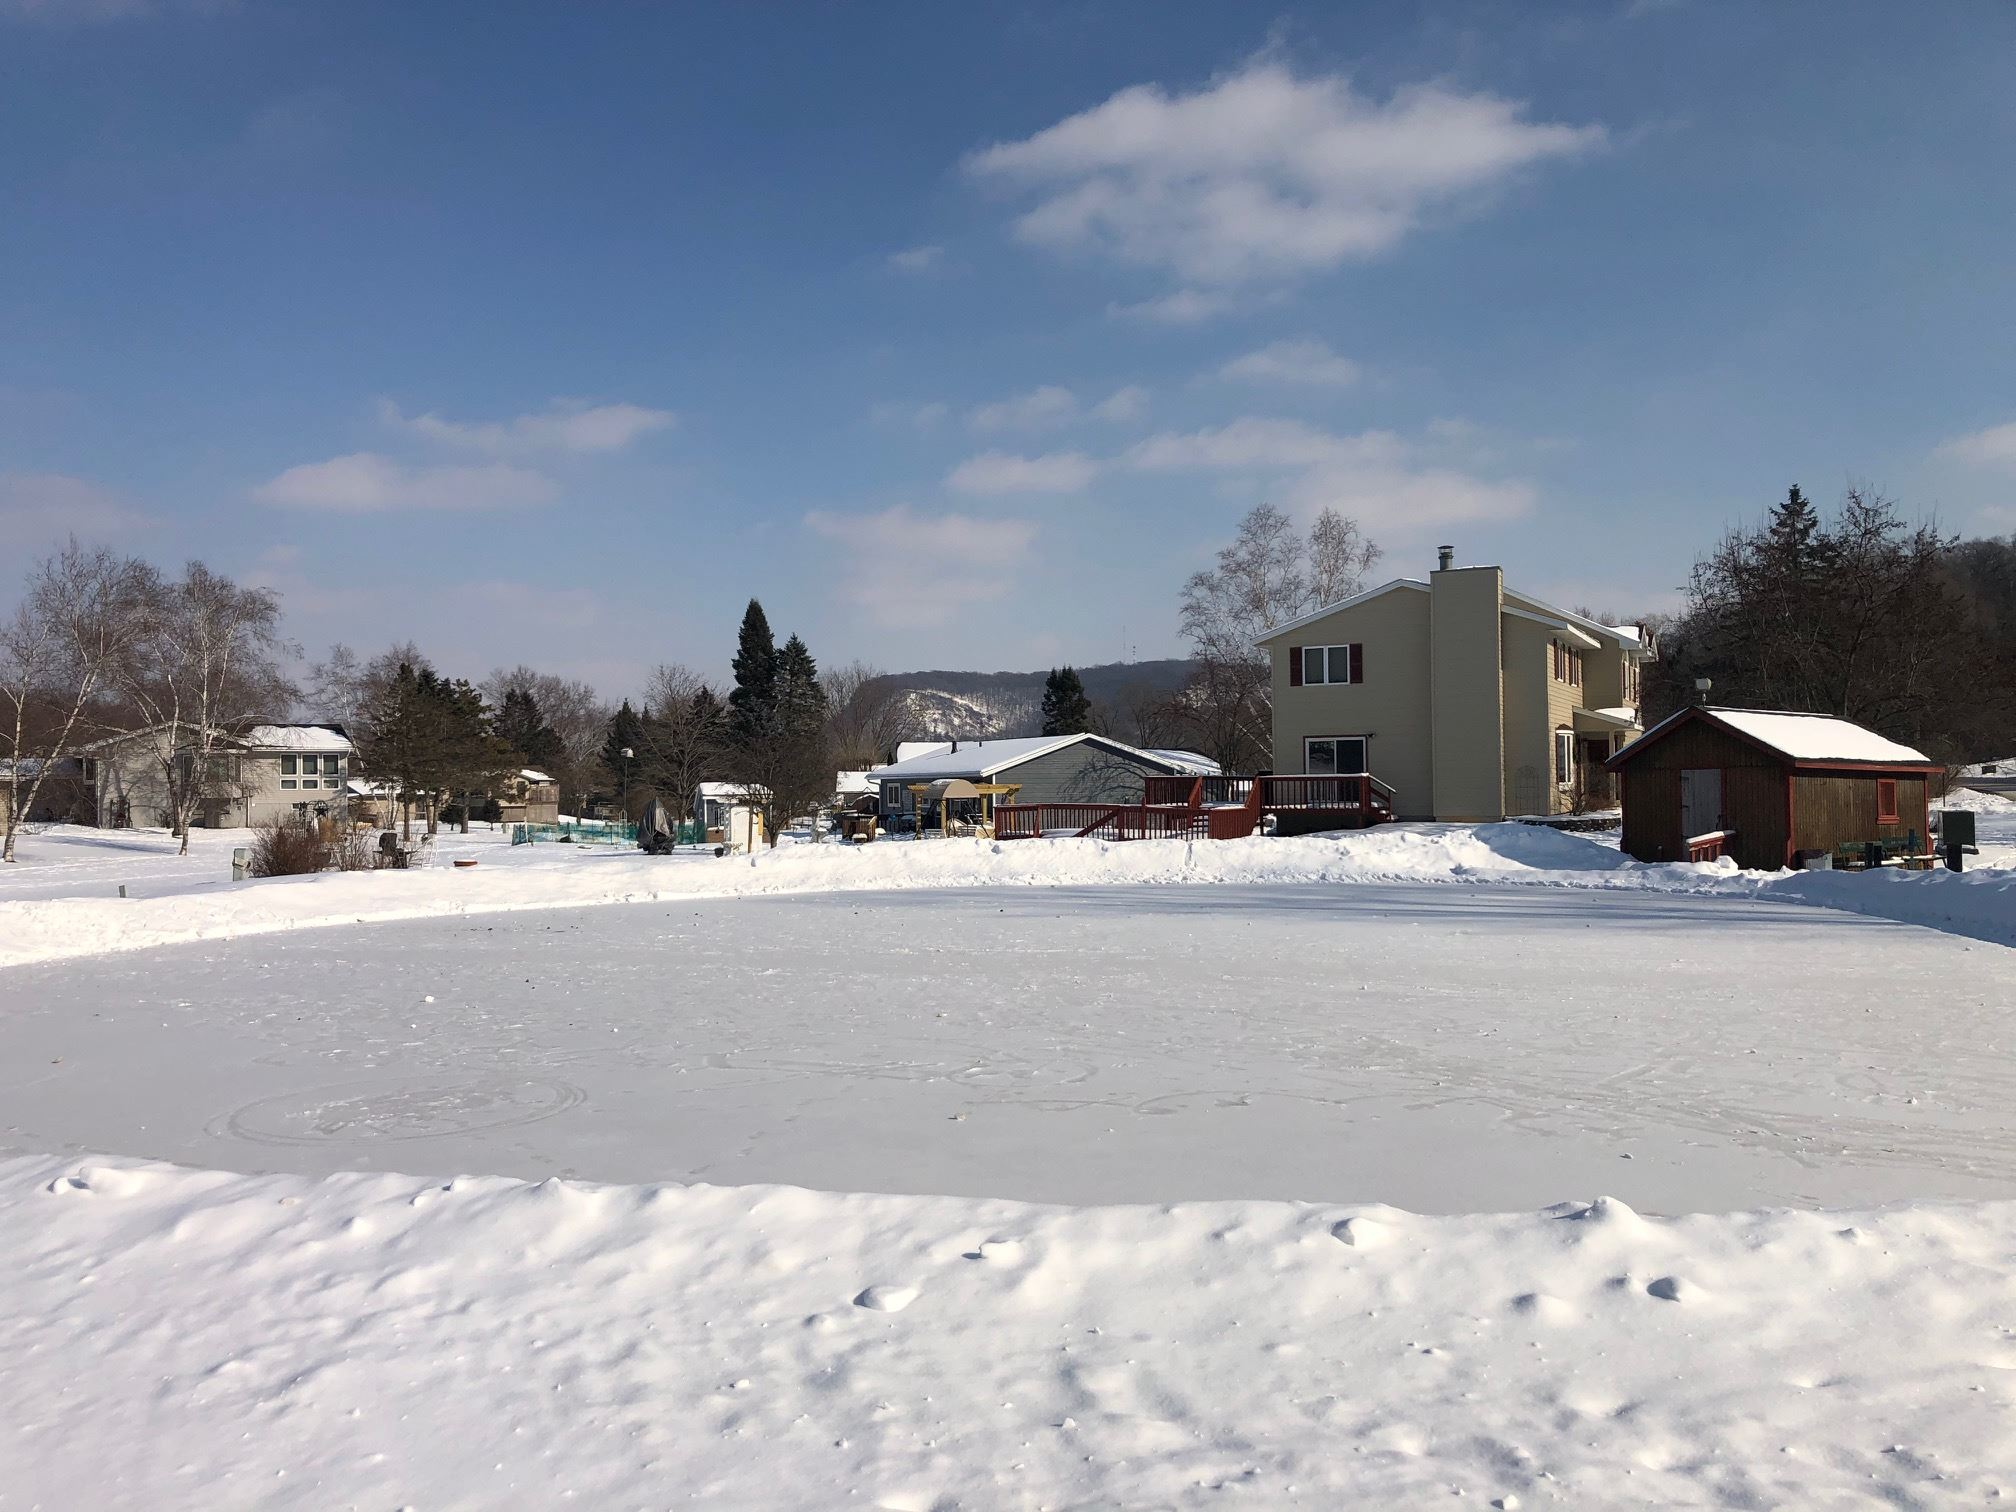 Knopp Valley Ice Rink